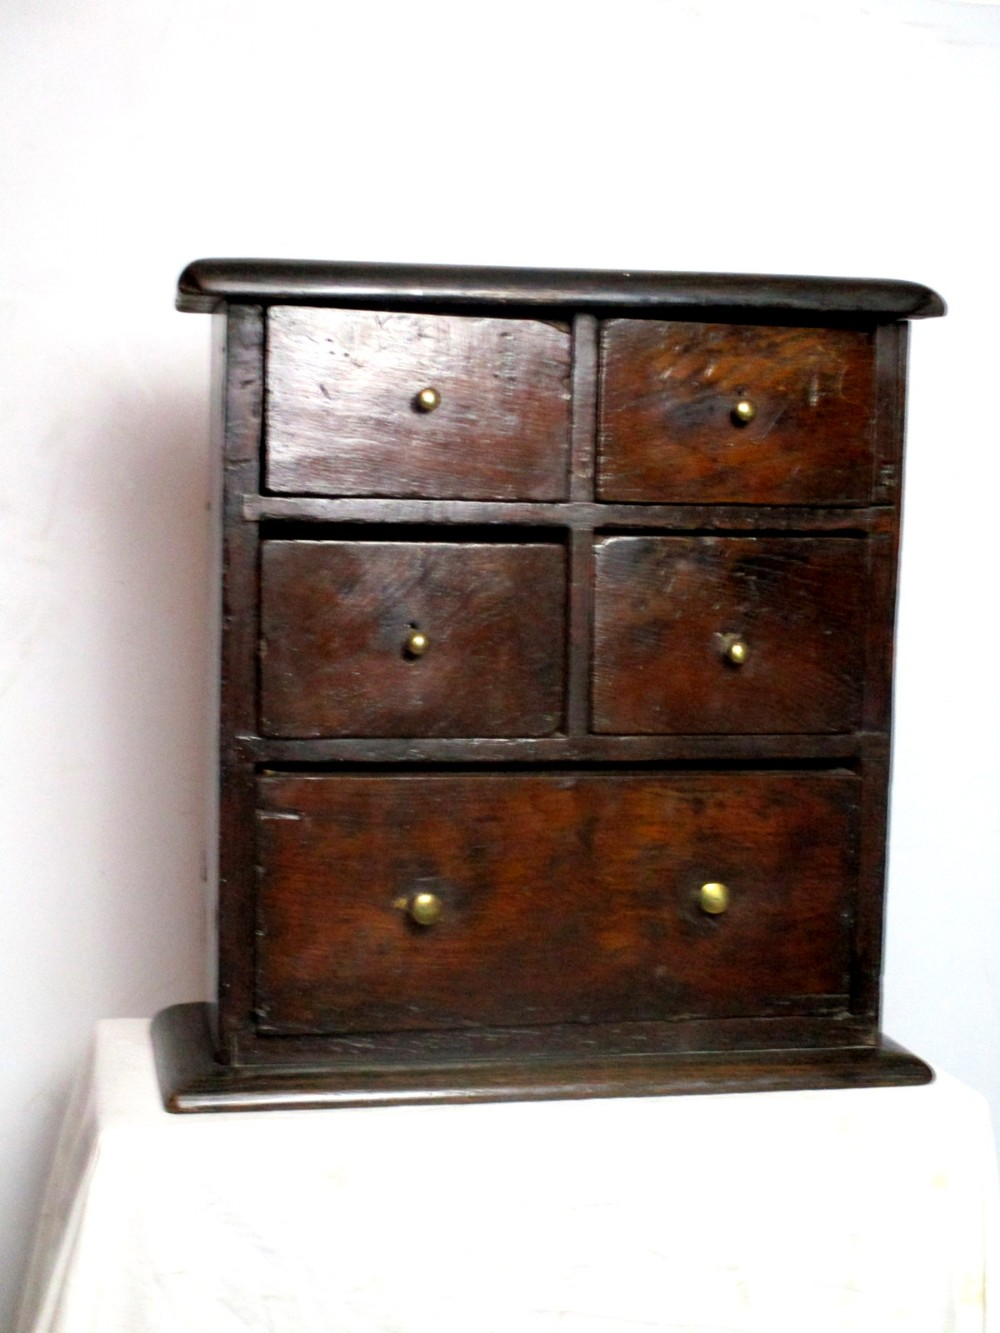 an extremely rare mid to late 17th century country house kitchen oak spice chest of drawers